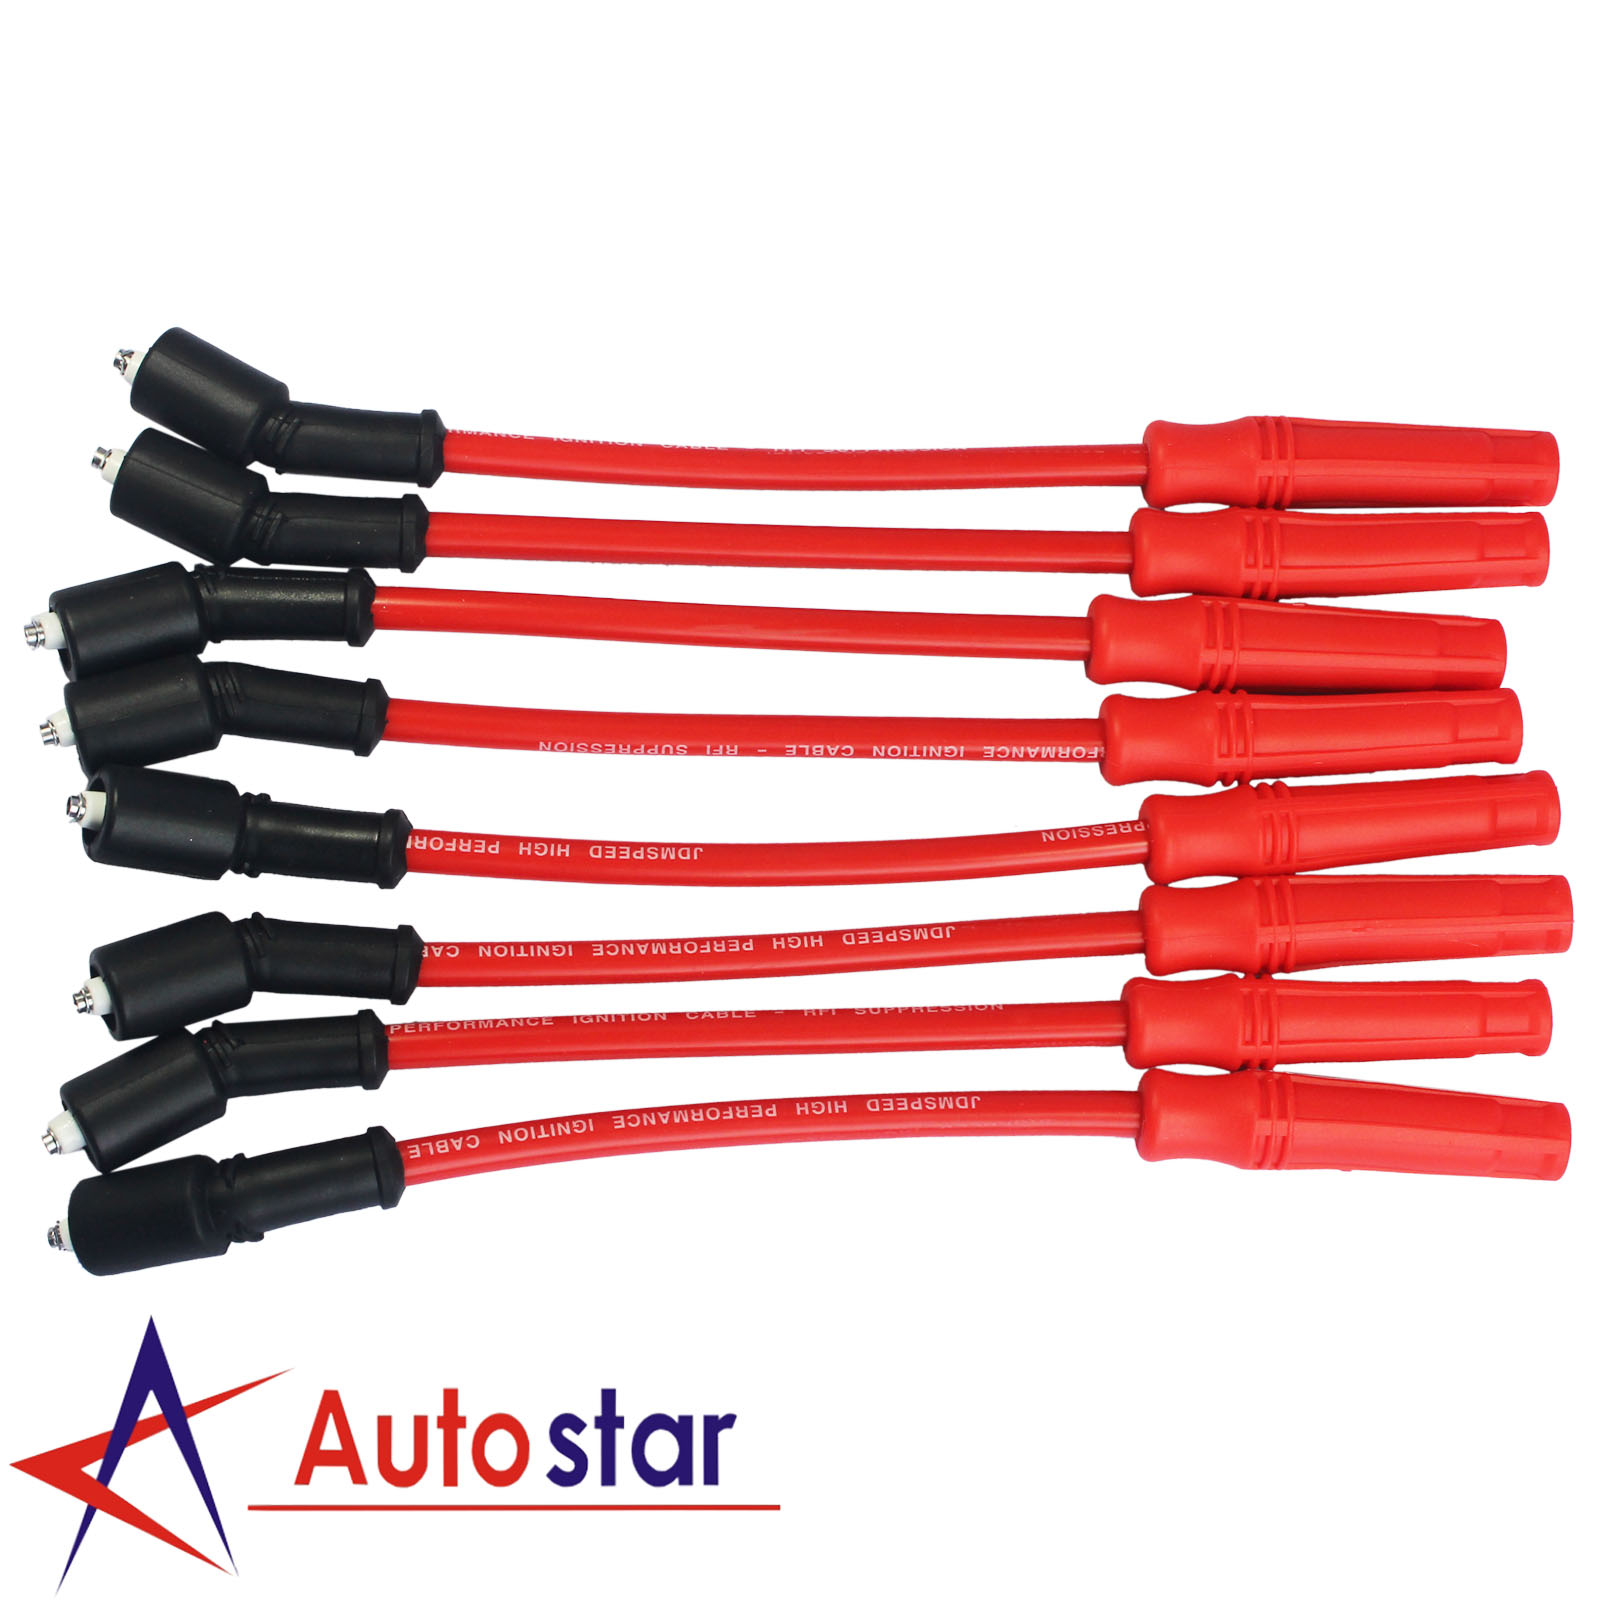 10.2mm Red Spark Plug Wires Set Fit For Chevy Gmc Truck 4.8 5.3 6.0 Vortec Engines